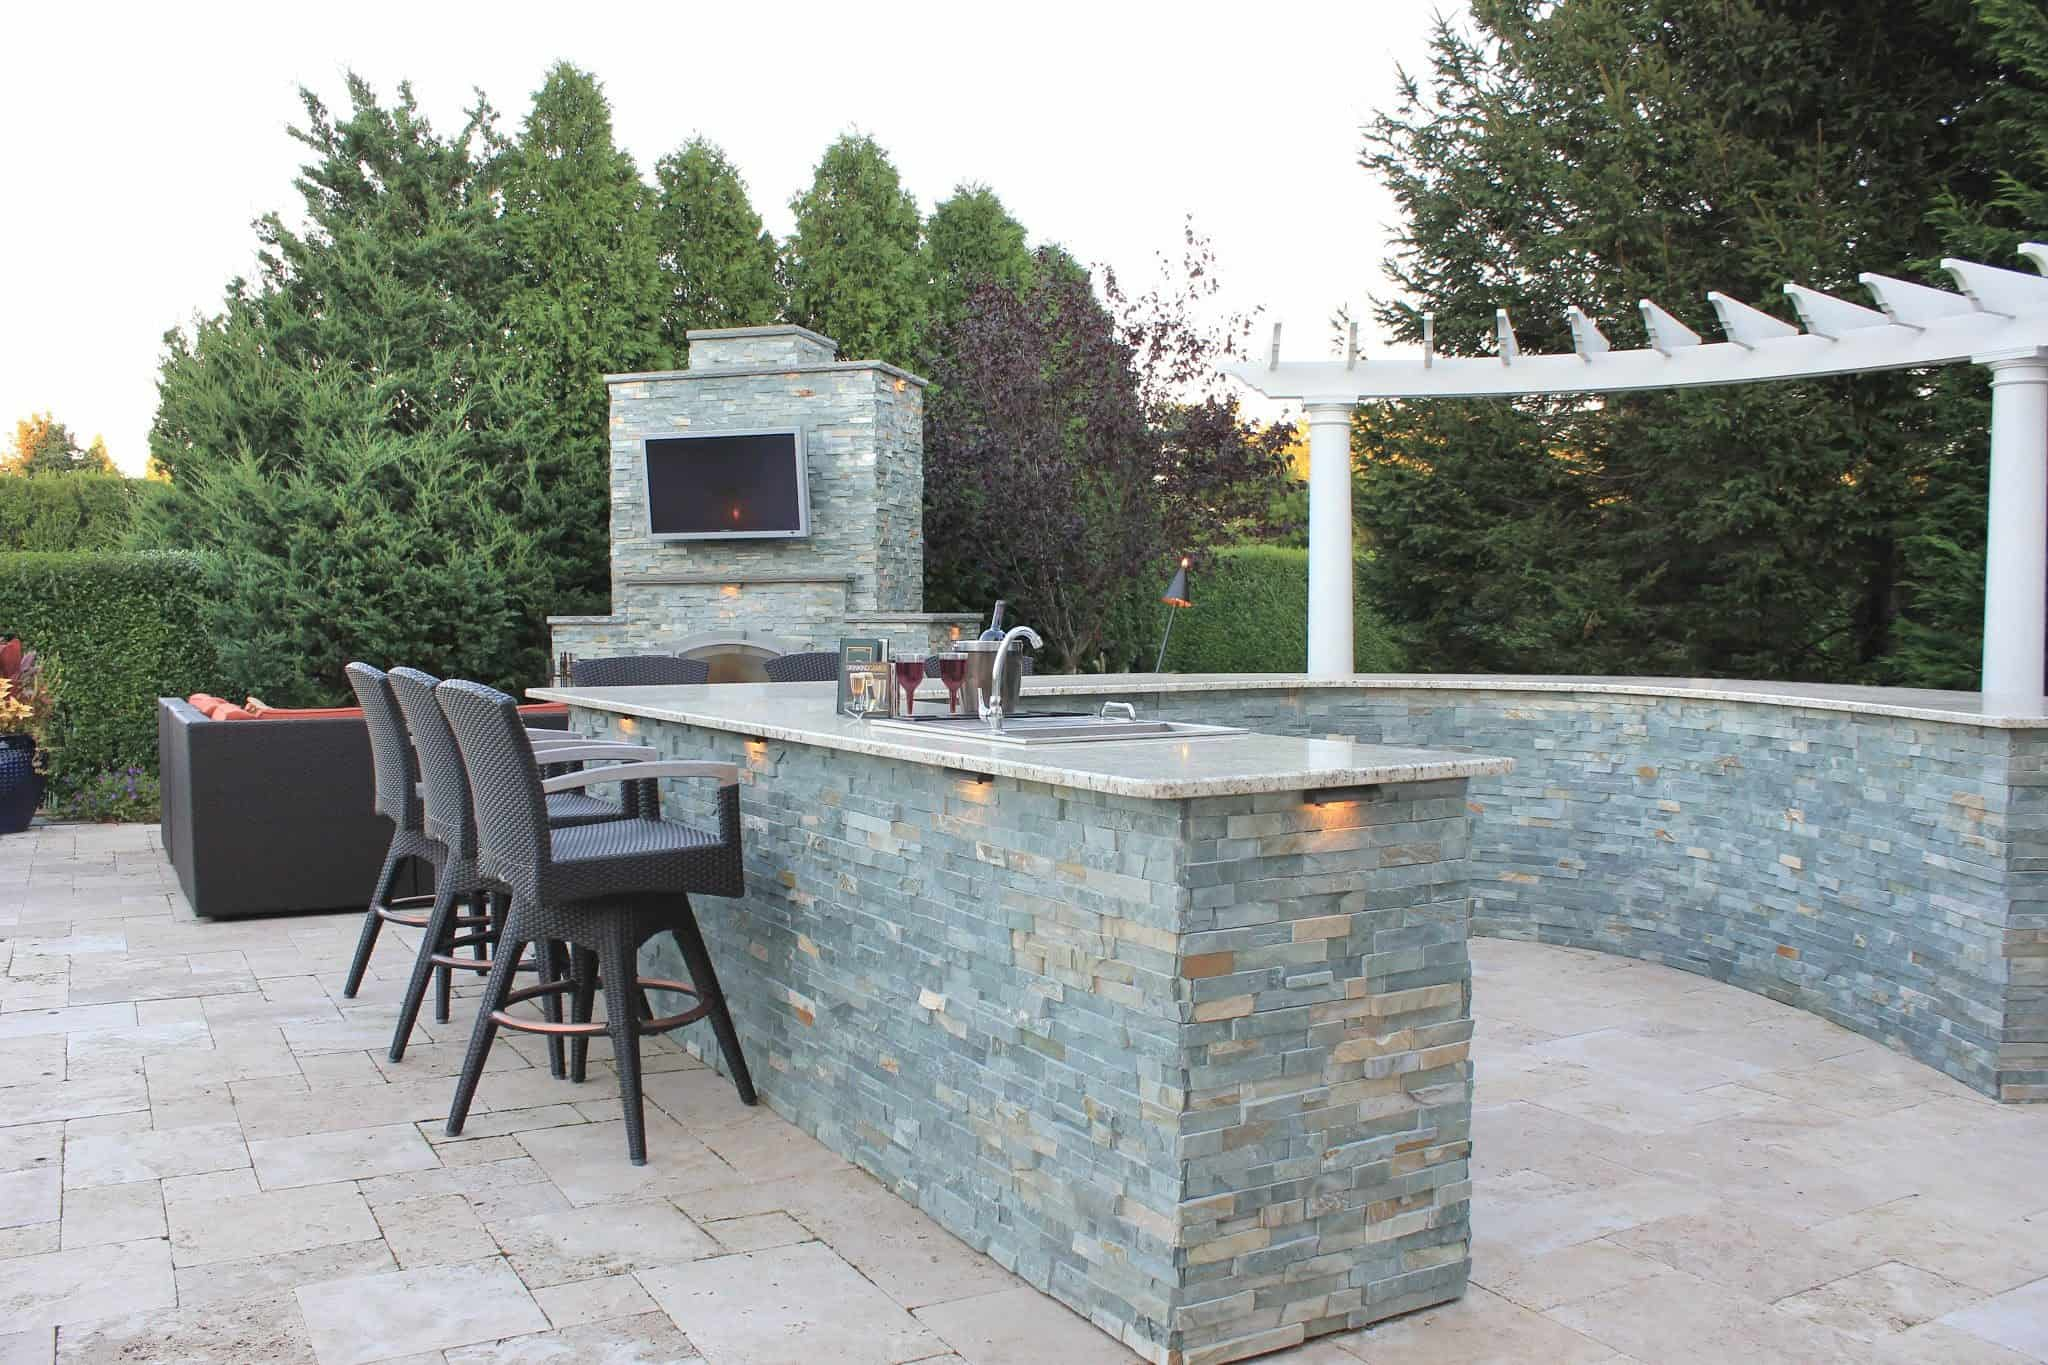 Outdoor Bar and Fireplace veneered in East West Stone - Bayside Waters - Southampton, Long Island NY